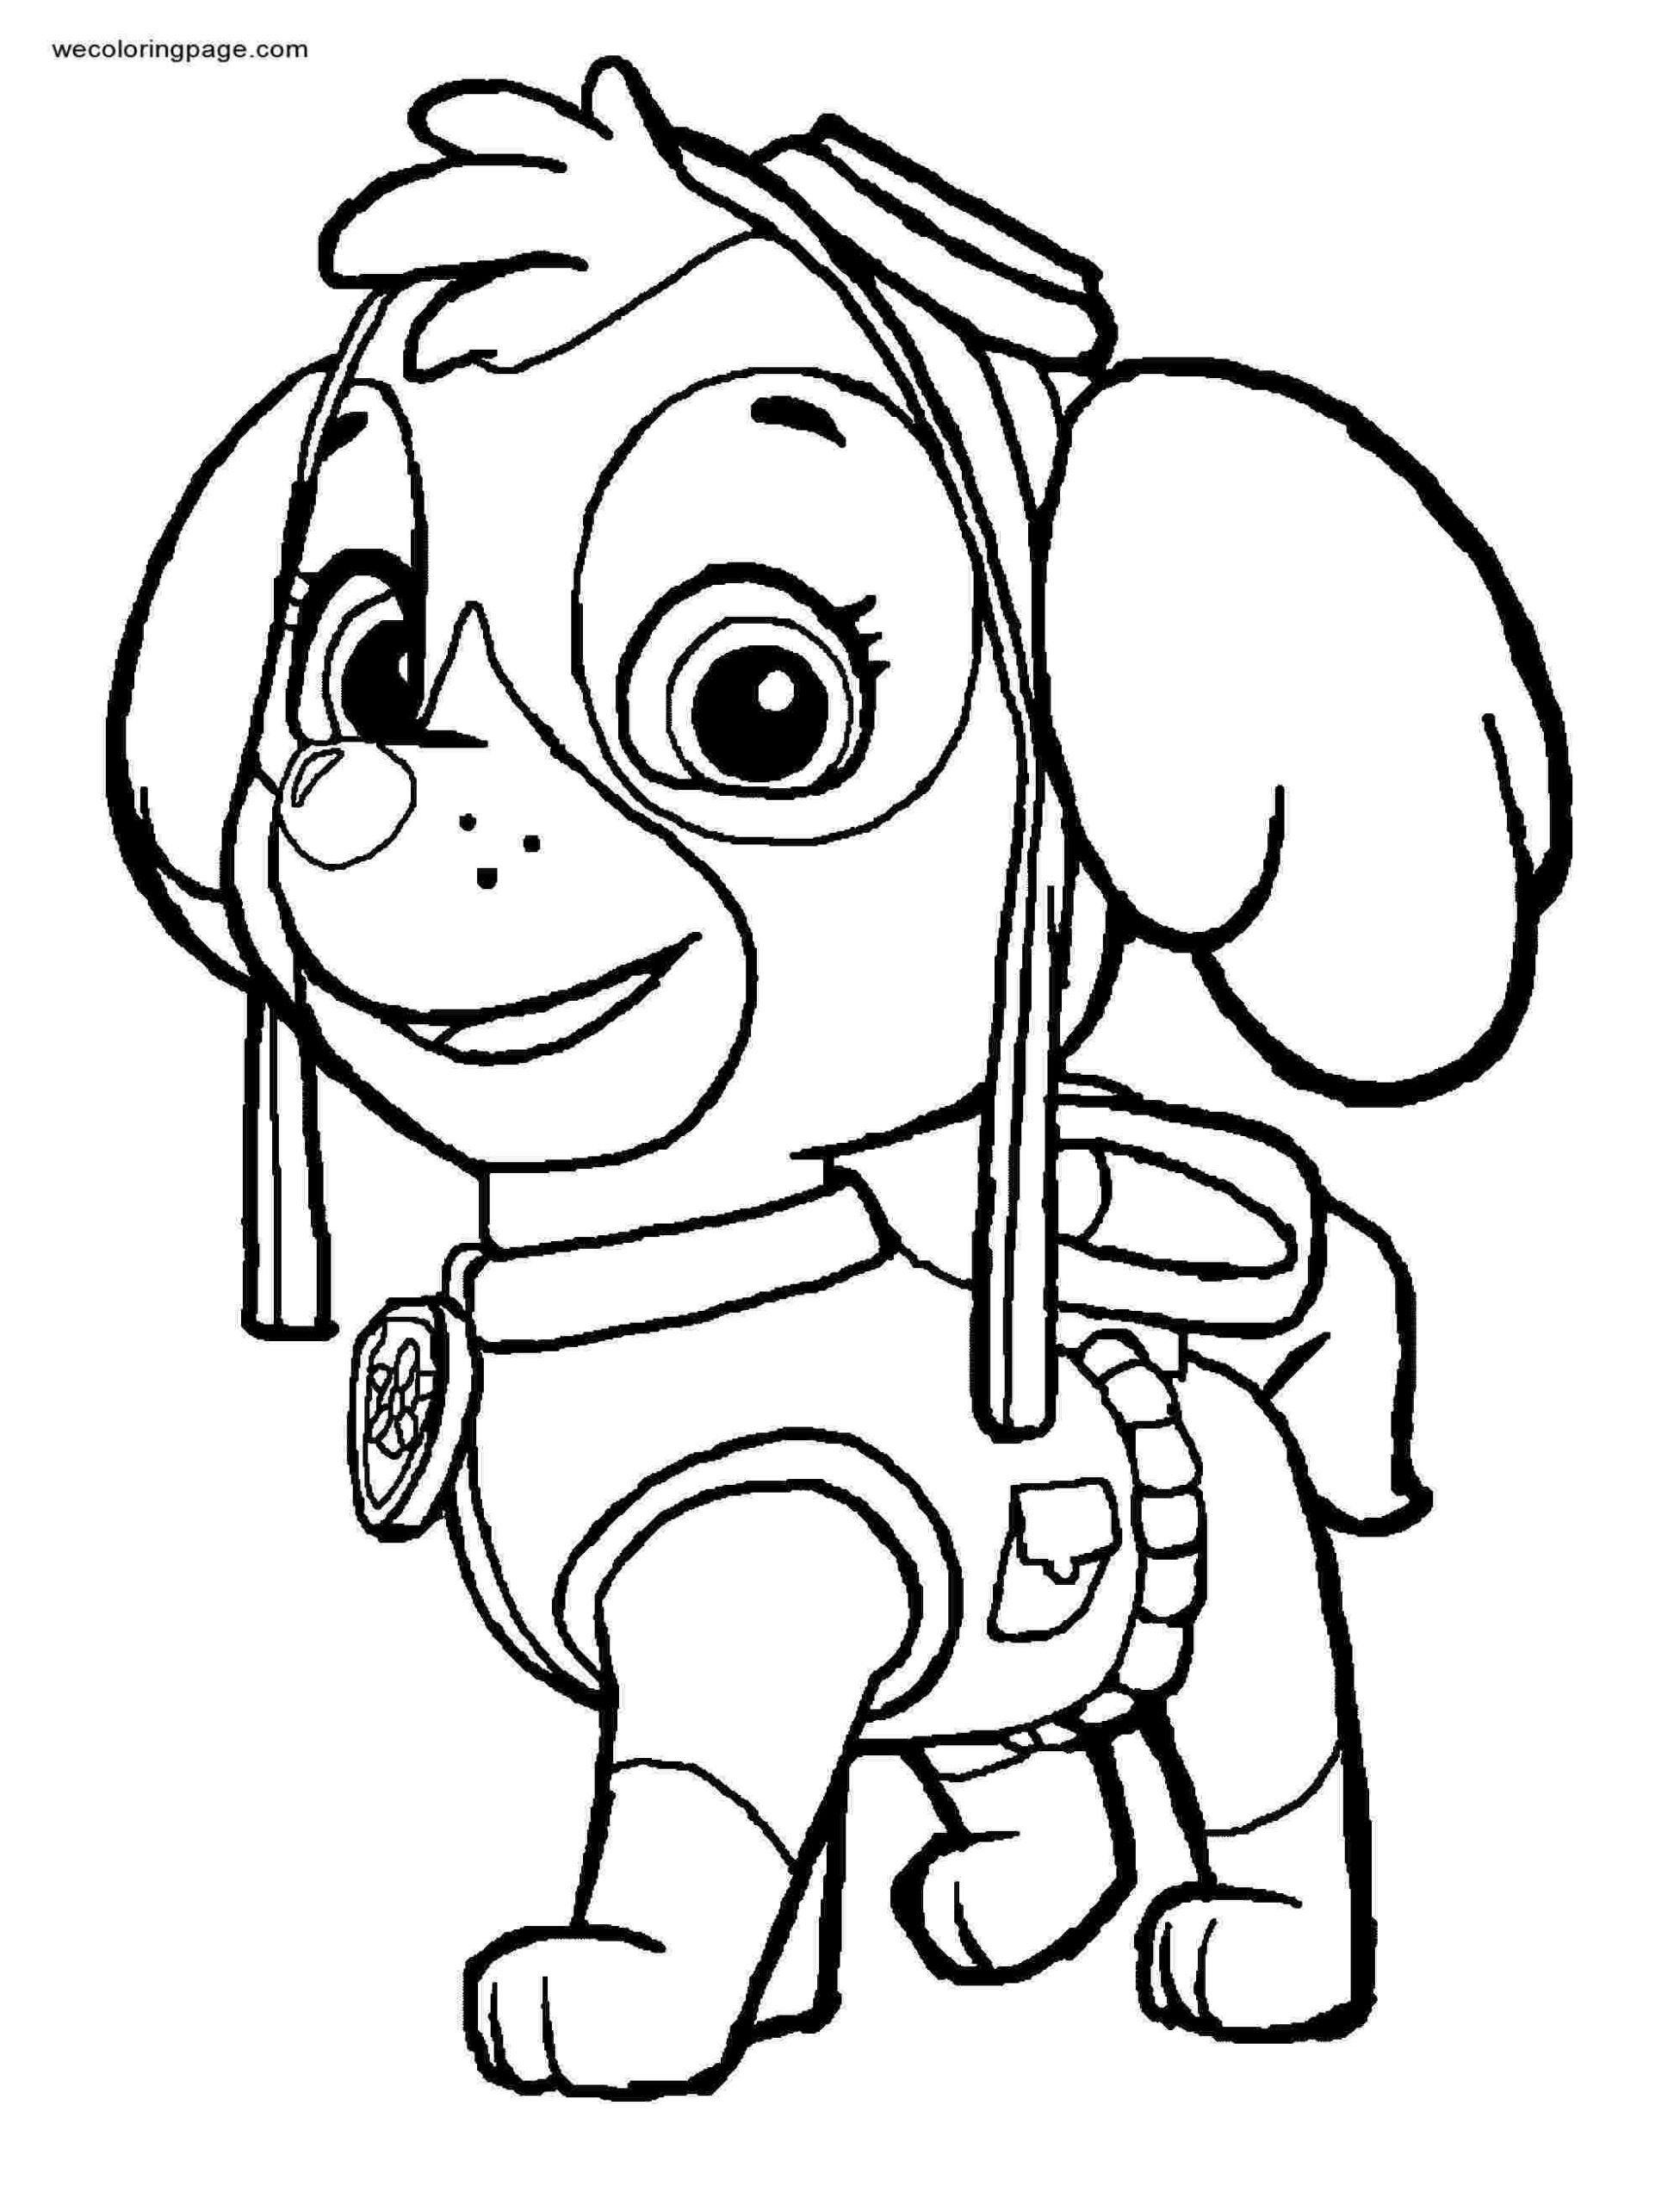 Skye Paw Patrol Coloring Page Youngandtae Com In 2020 Paw Patrol Coloring Paw Patrol Coloring Pages Puppy Coloring Pages